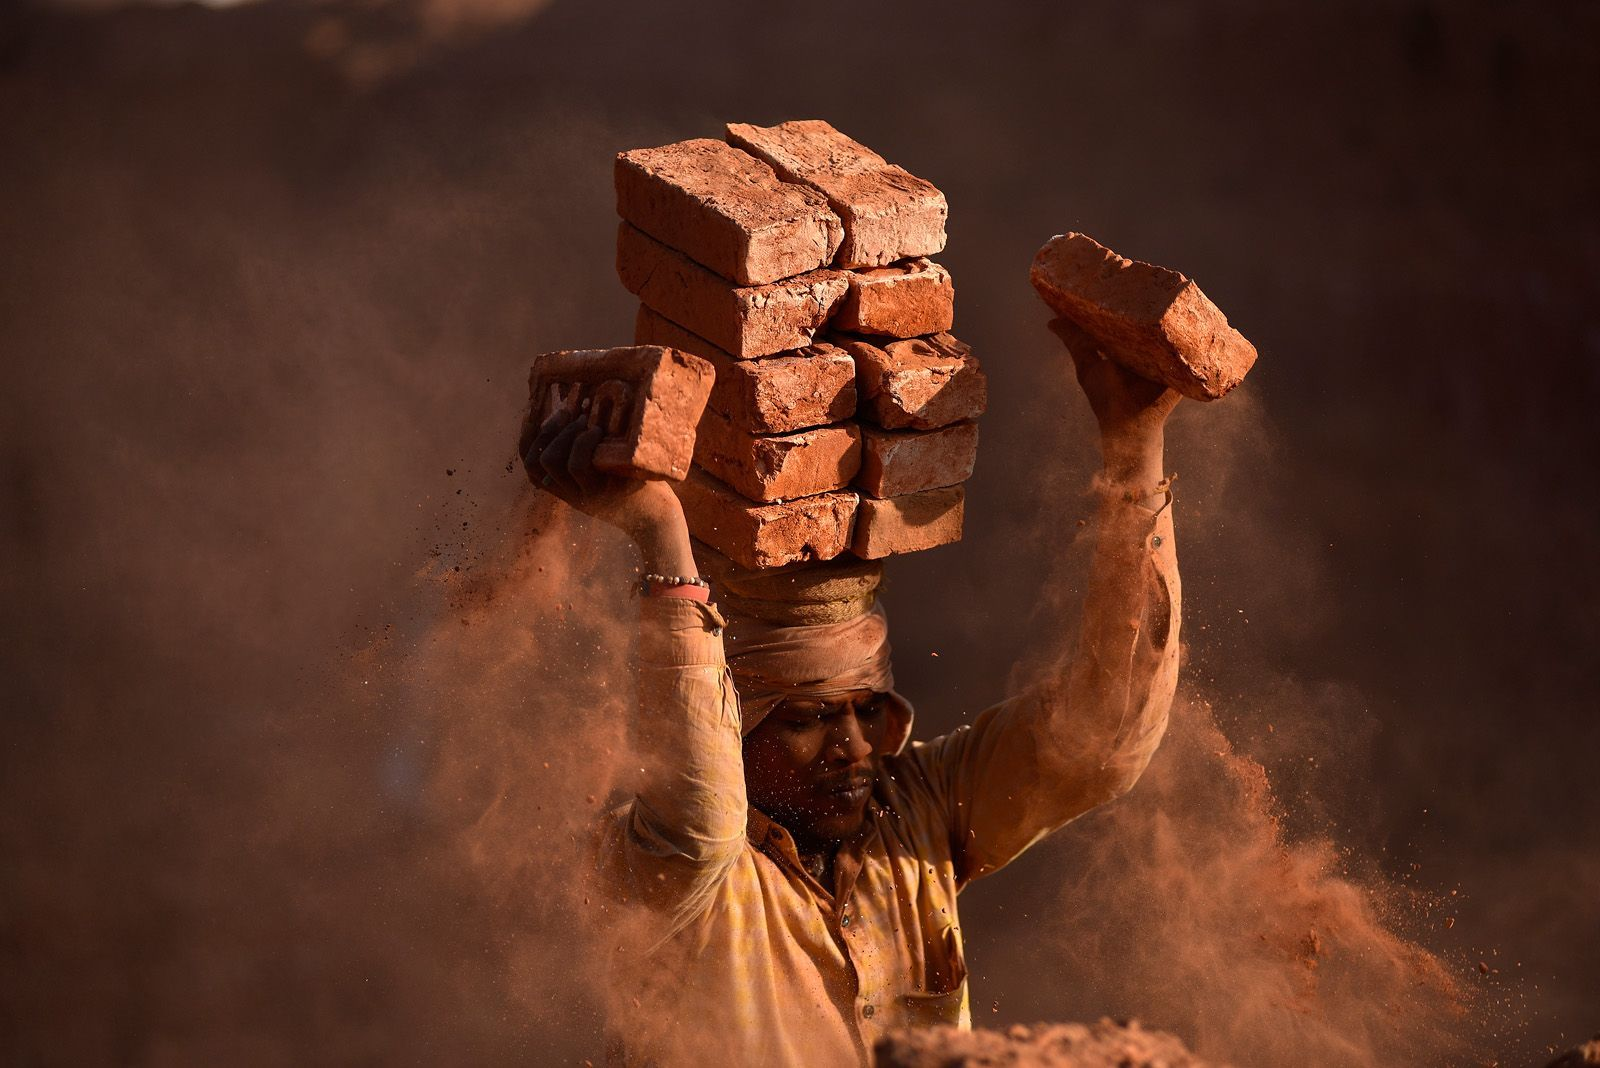 A migrant laborer from India balances bricks on his head at a brick factory in Lalitpur, Nepal. The factory workers can carry up to 16 bricks on their heads at a time.